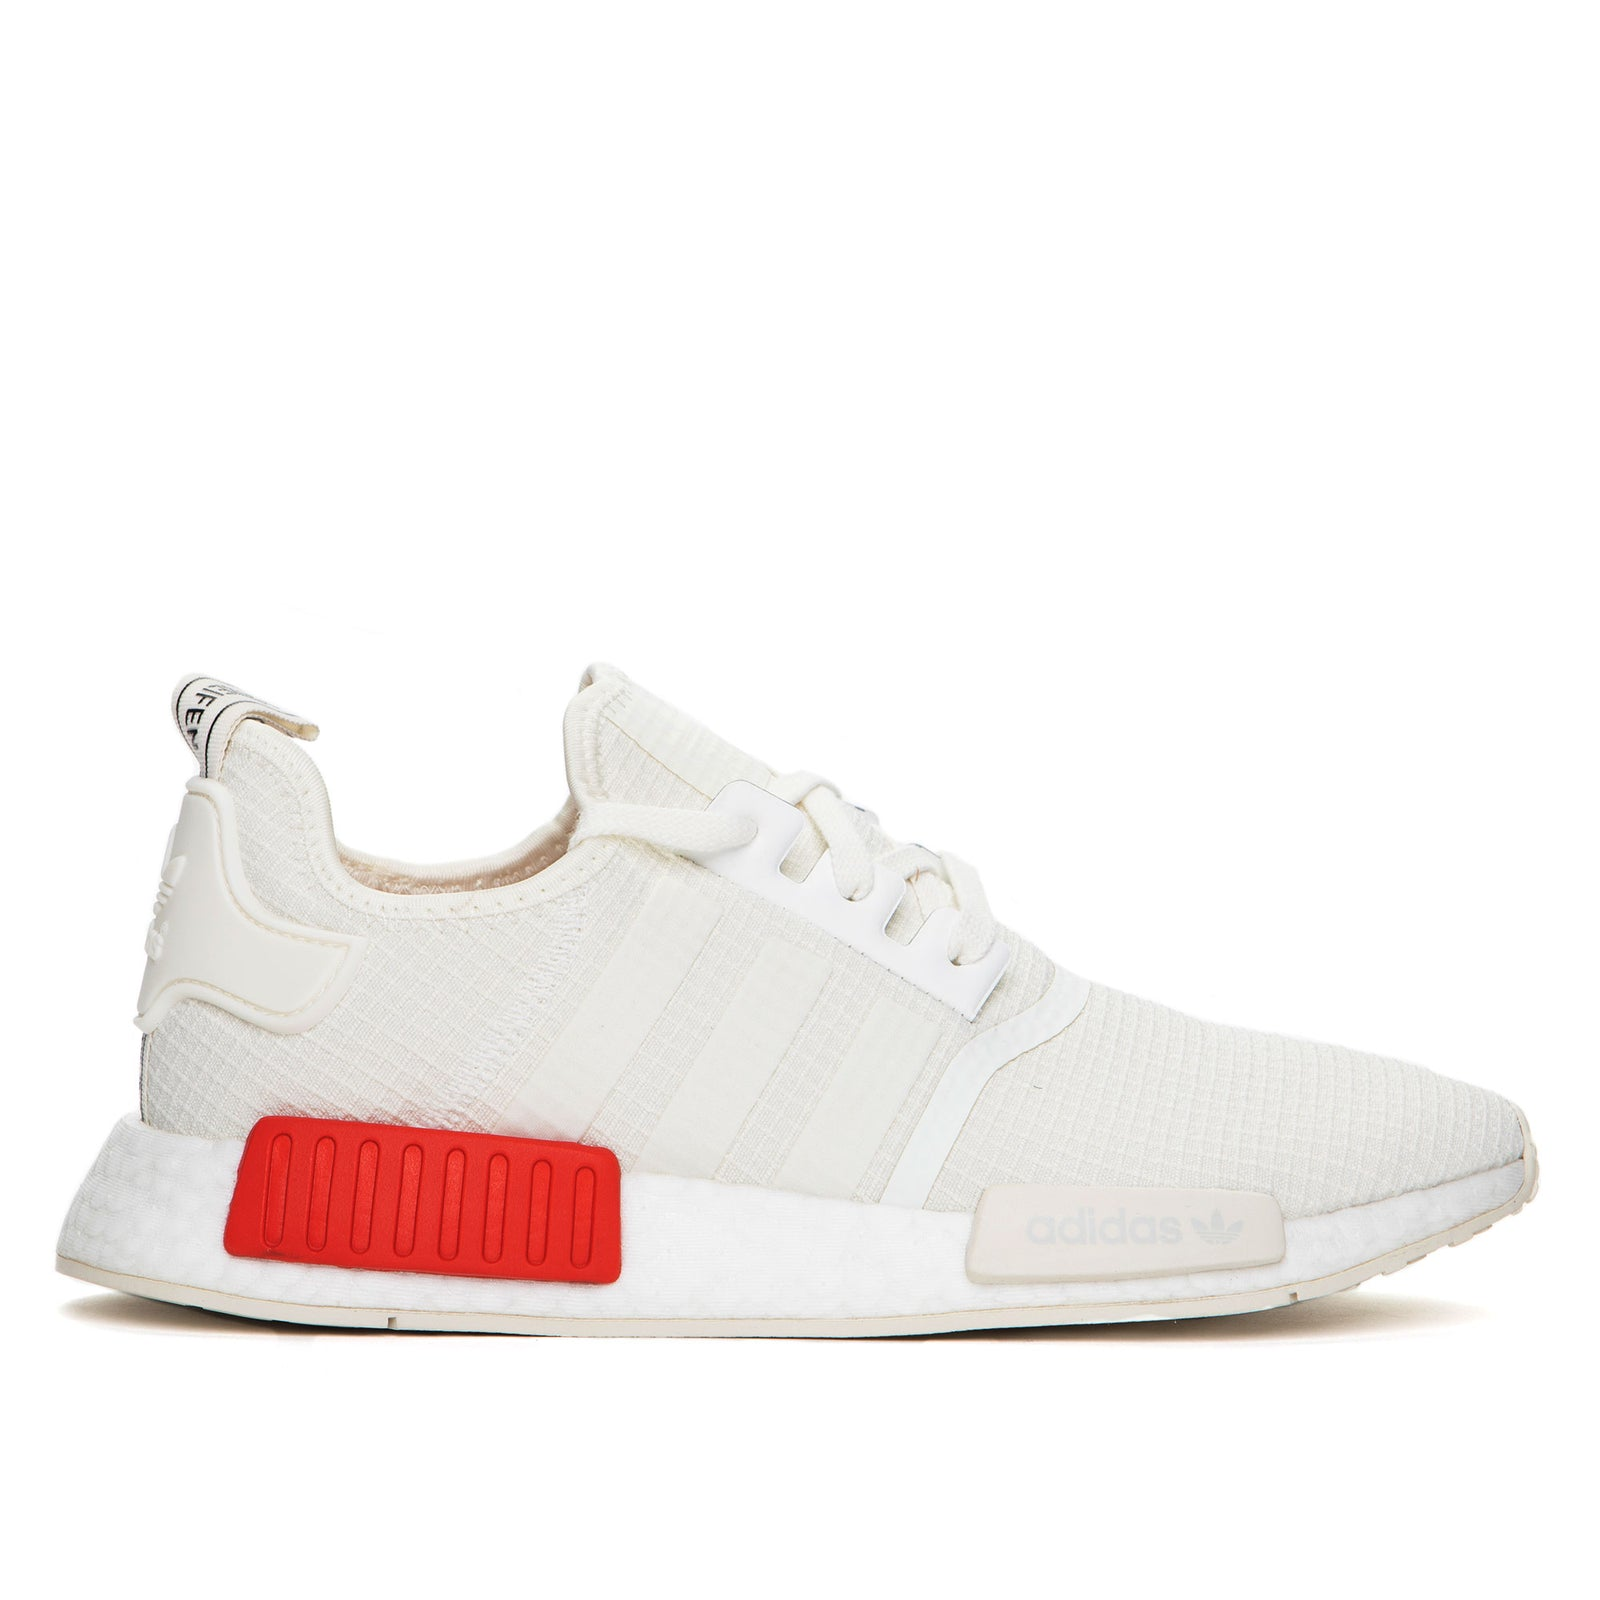 more photos c5637 03db8 NMD_R1 Shoes